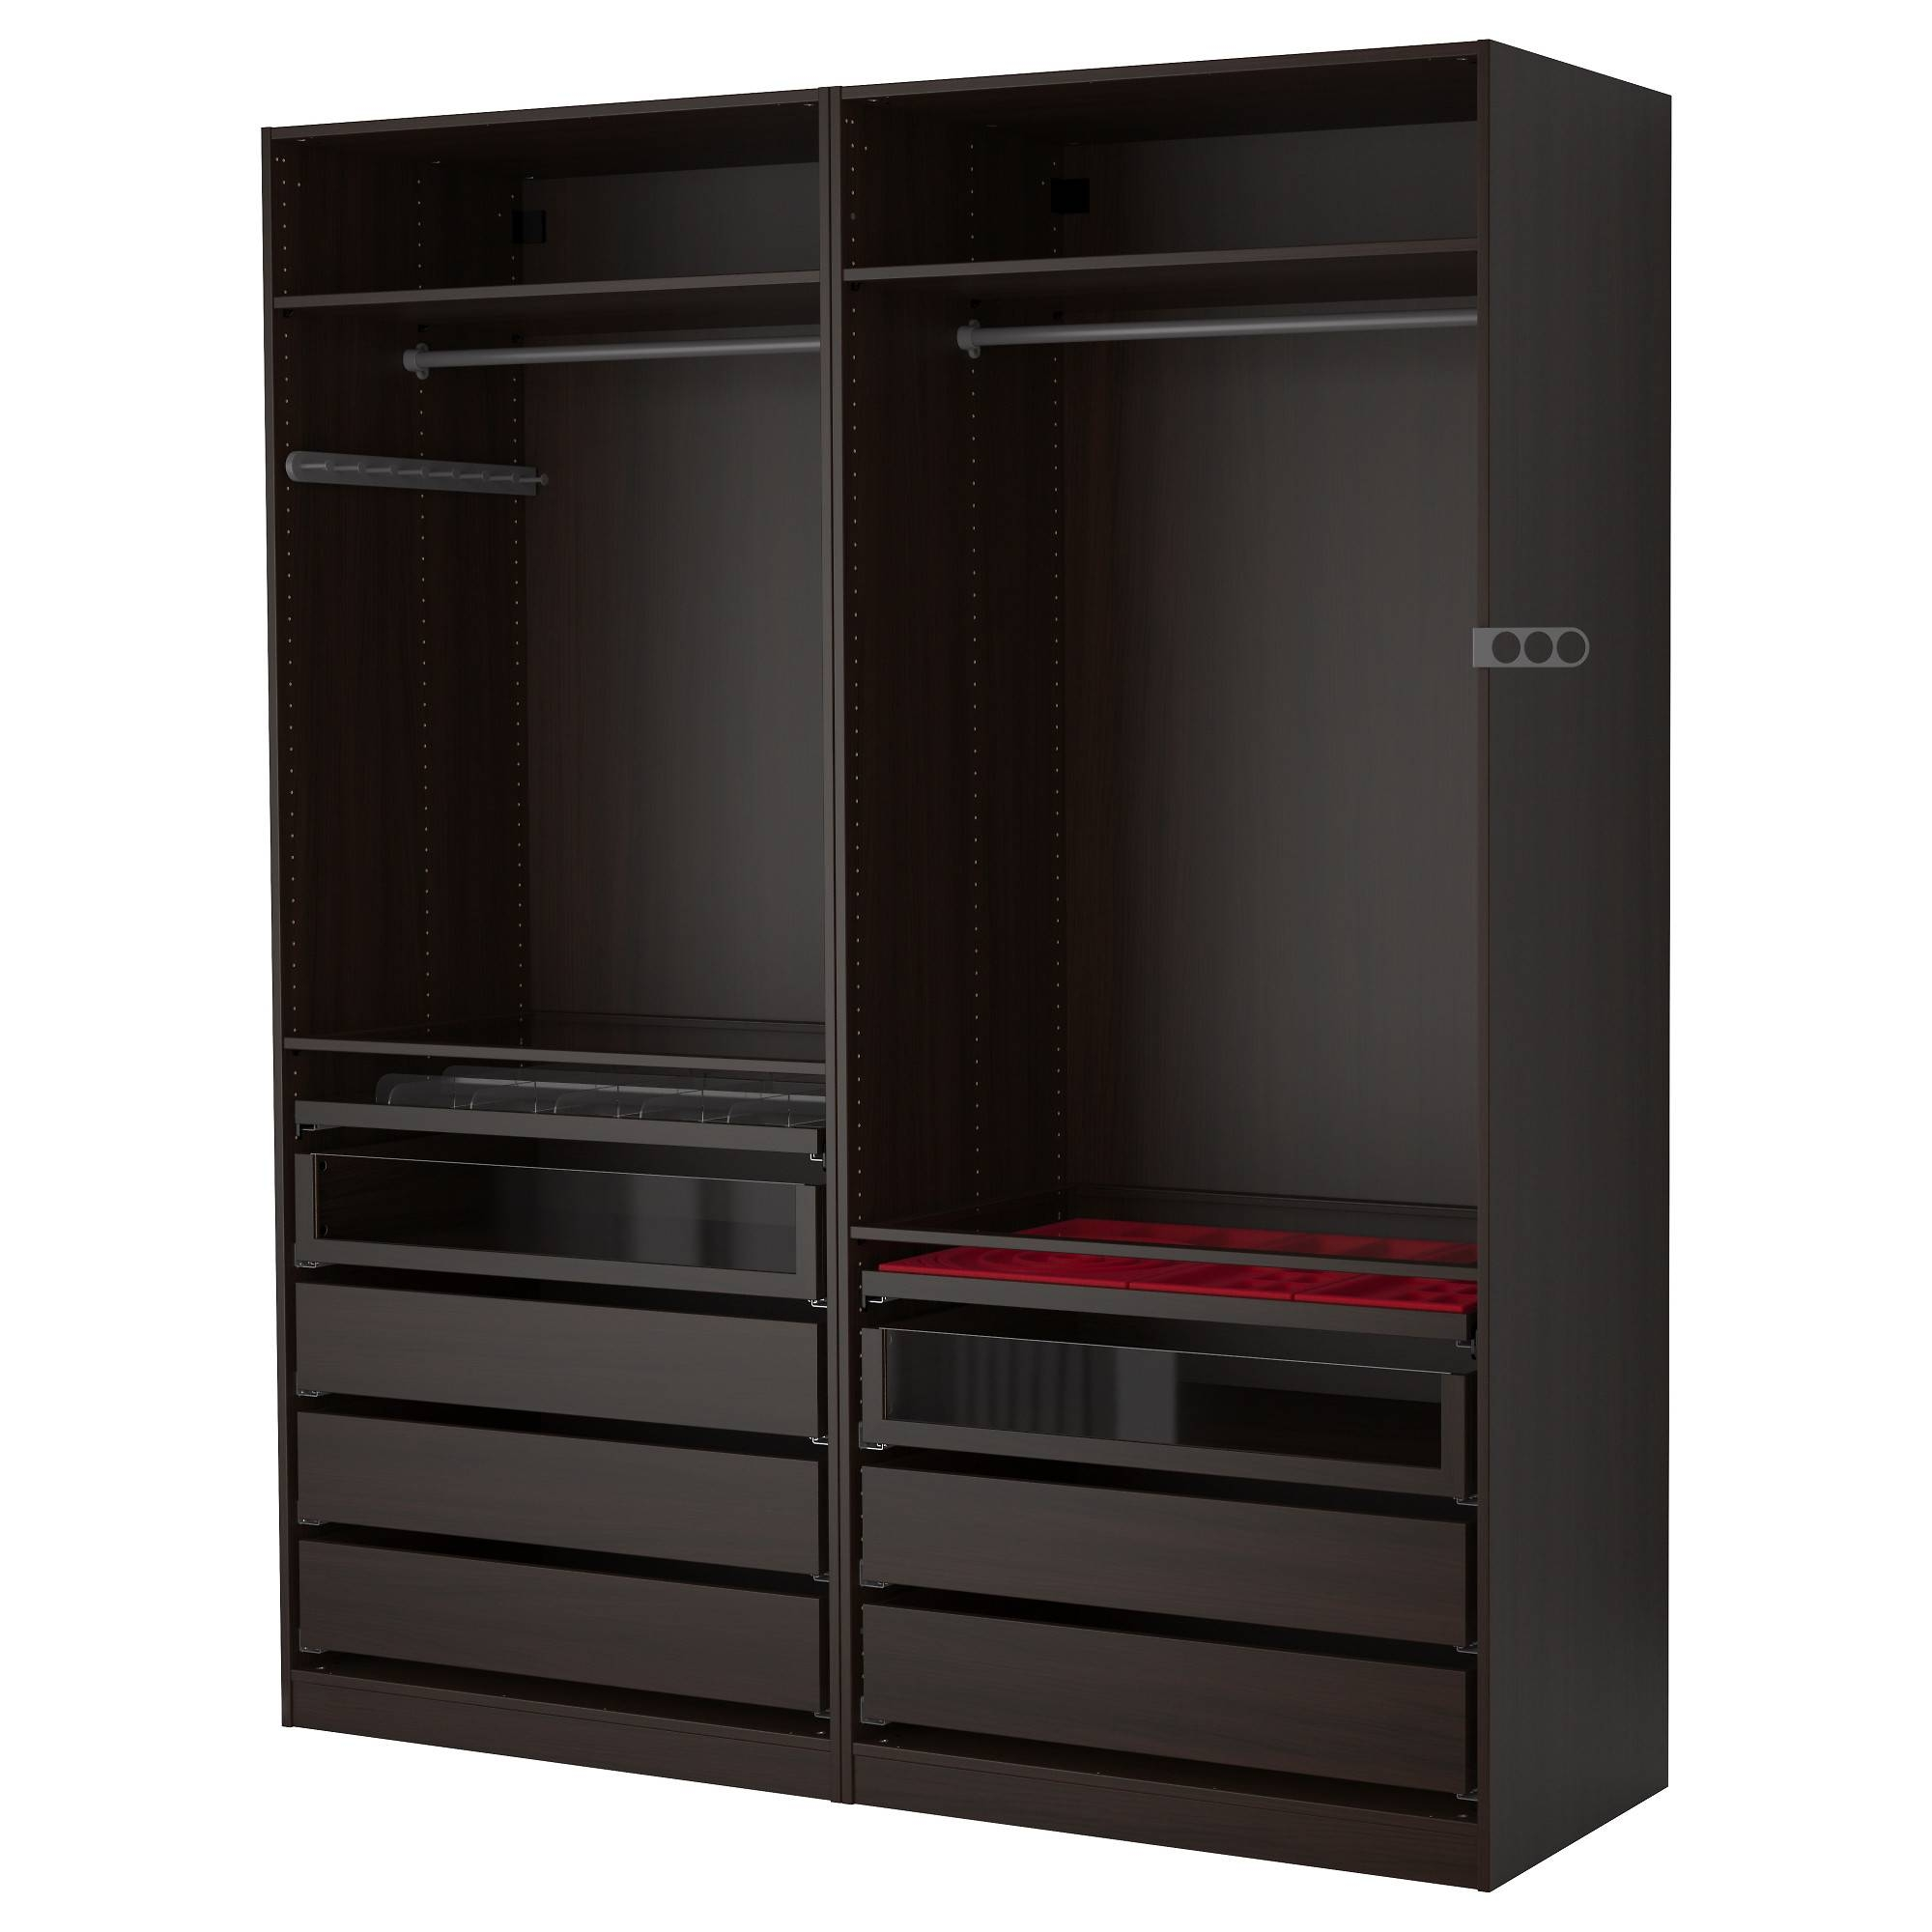 Pax Wardrobe Black-Brown 200X58X236 Cm - Ikea throughout Wardrobe Drawers and Shelves Ikea (Image 22 of 30)